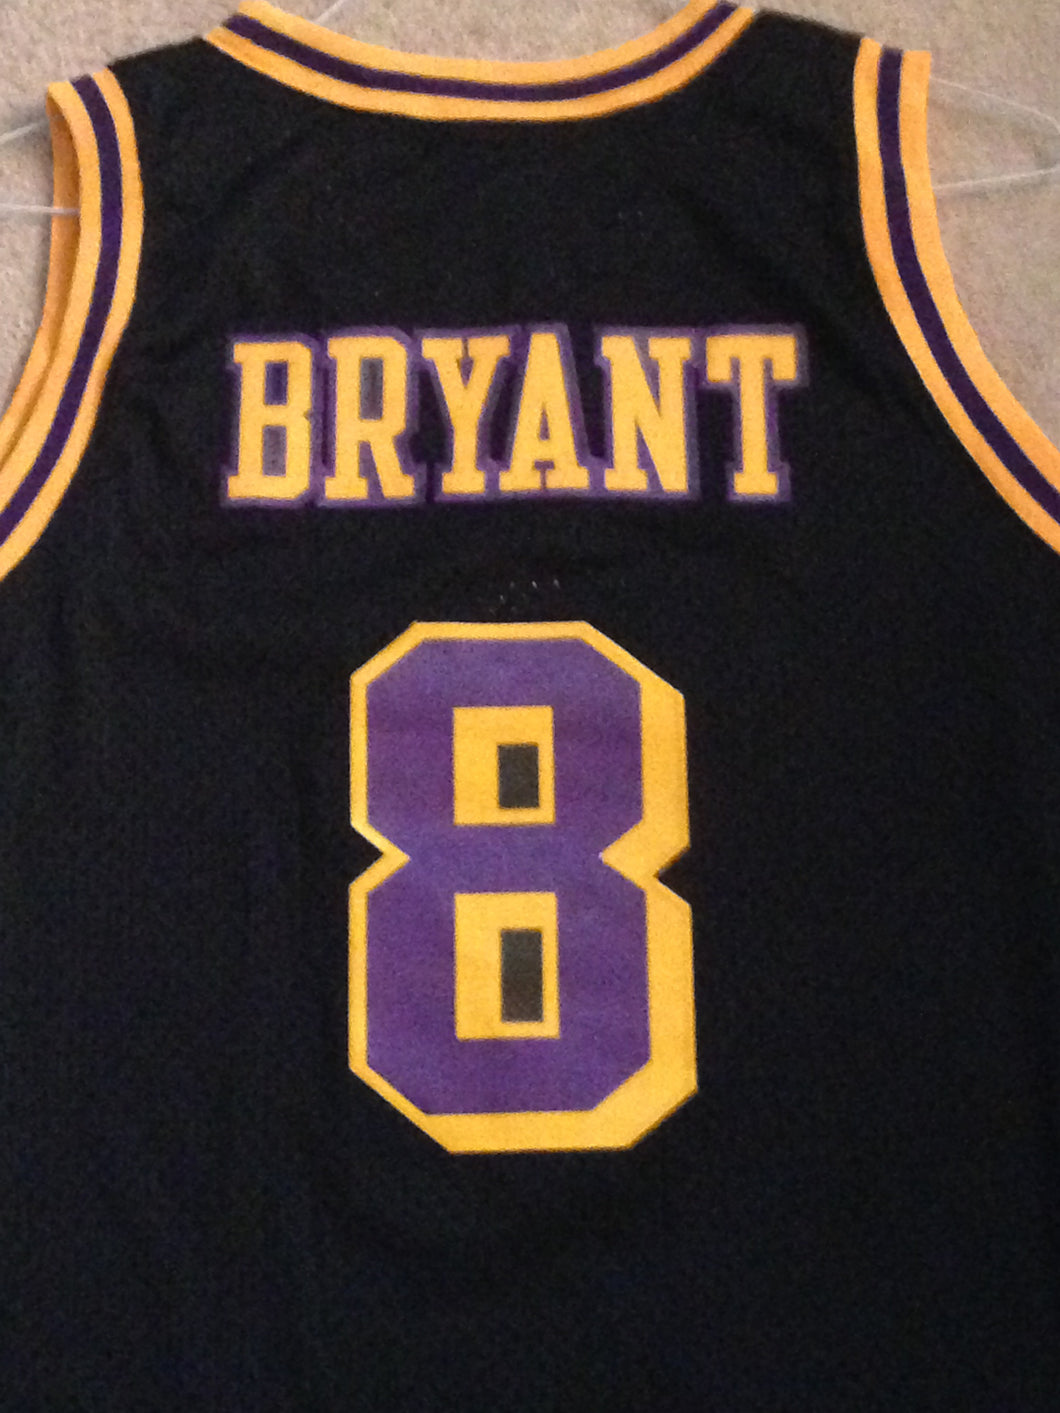 finest selection 9add4 6feb9 Nike LA Los Angeles Lakers Kobe Bryant #8 Road Rewind NBA ...